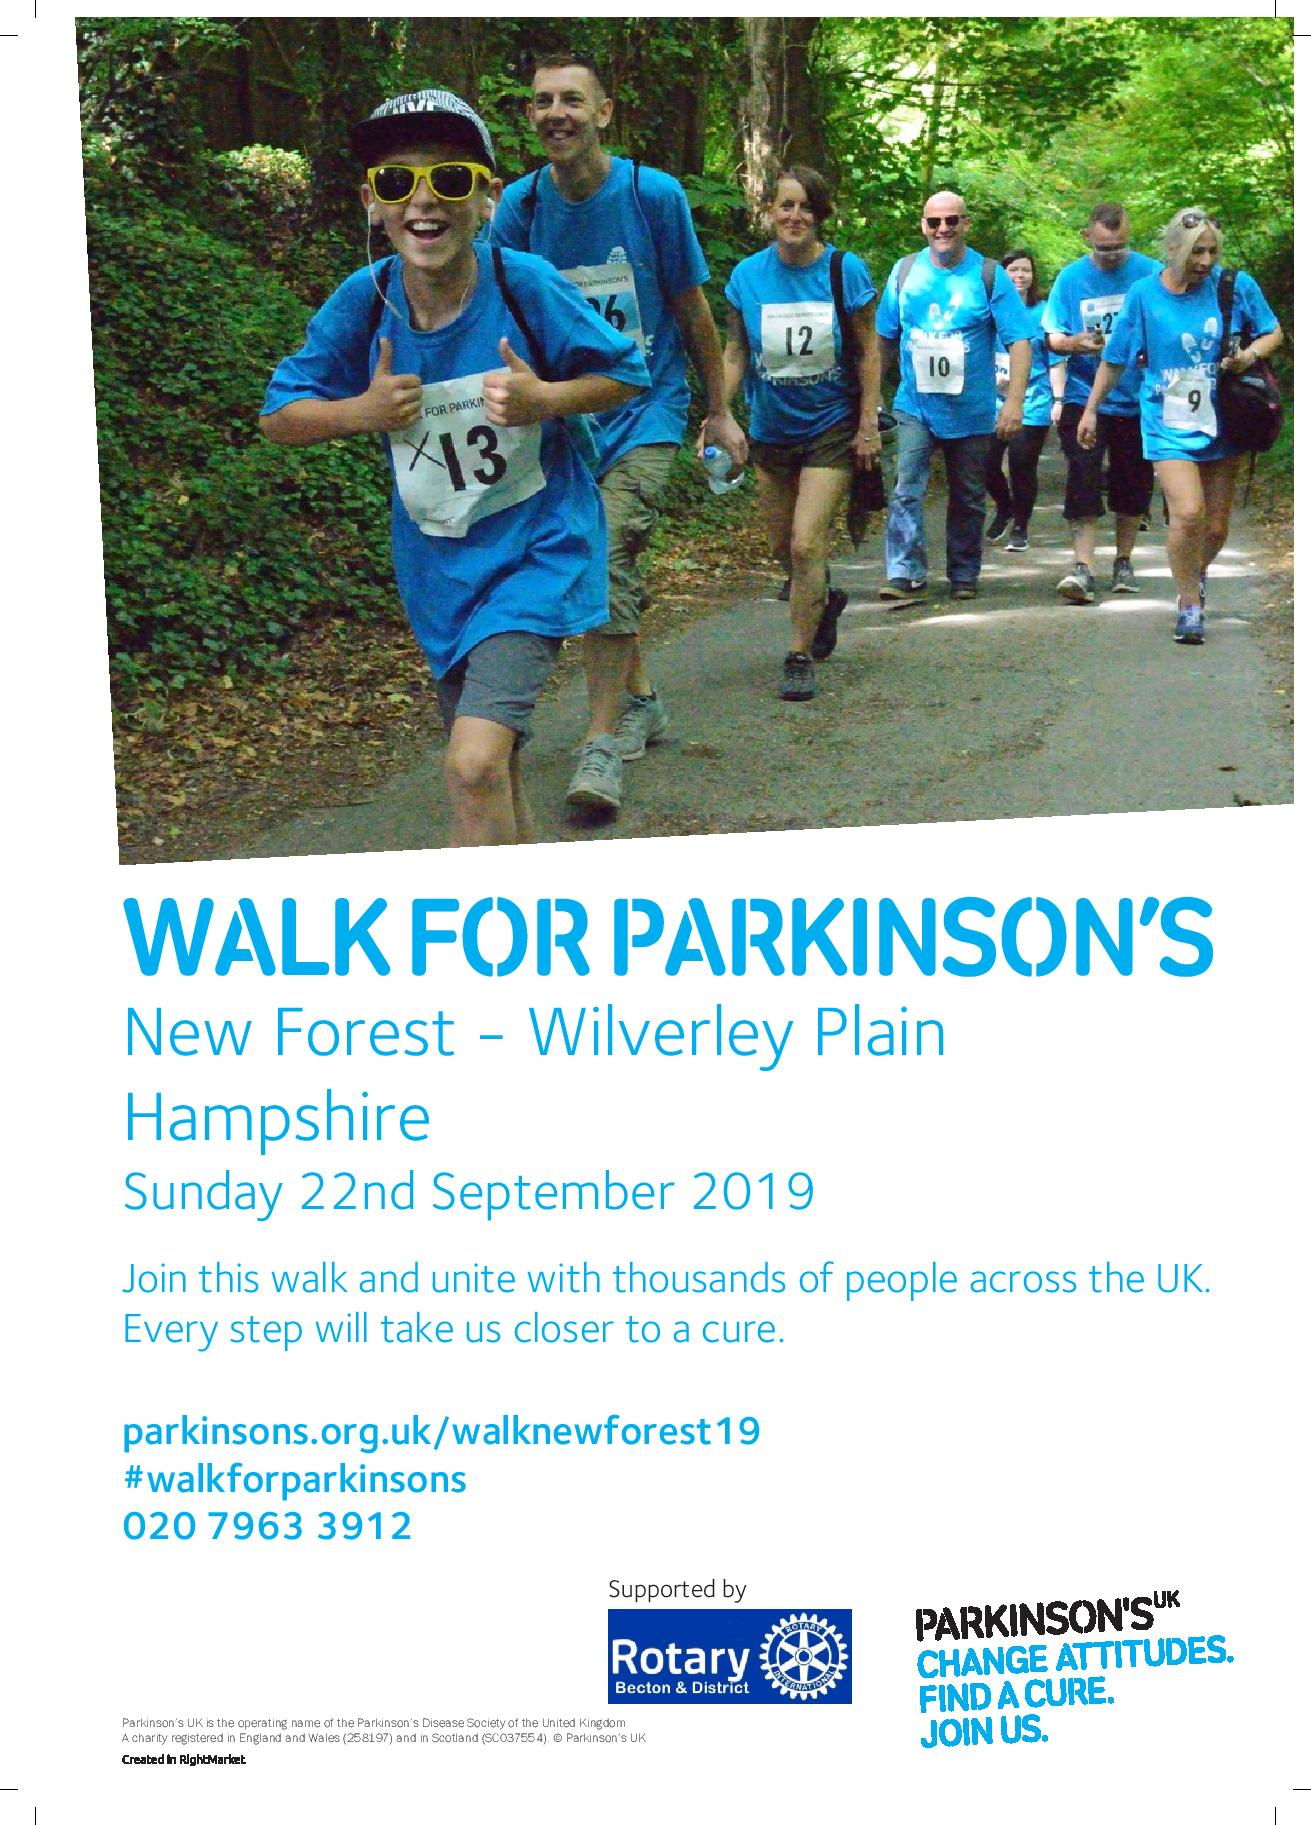 Walk for Parkinson's New Forest